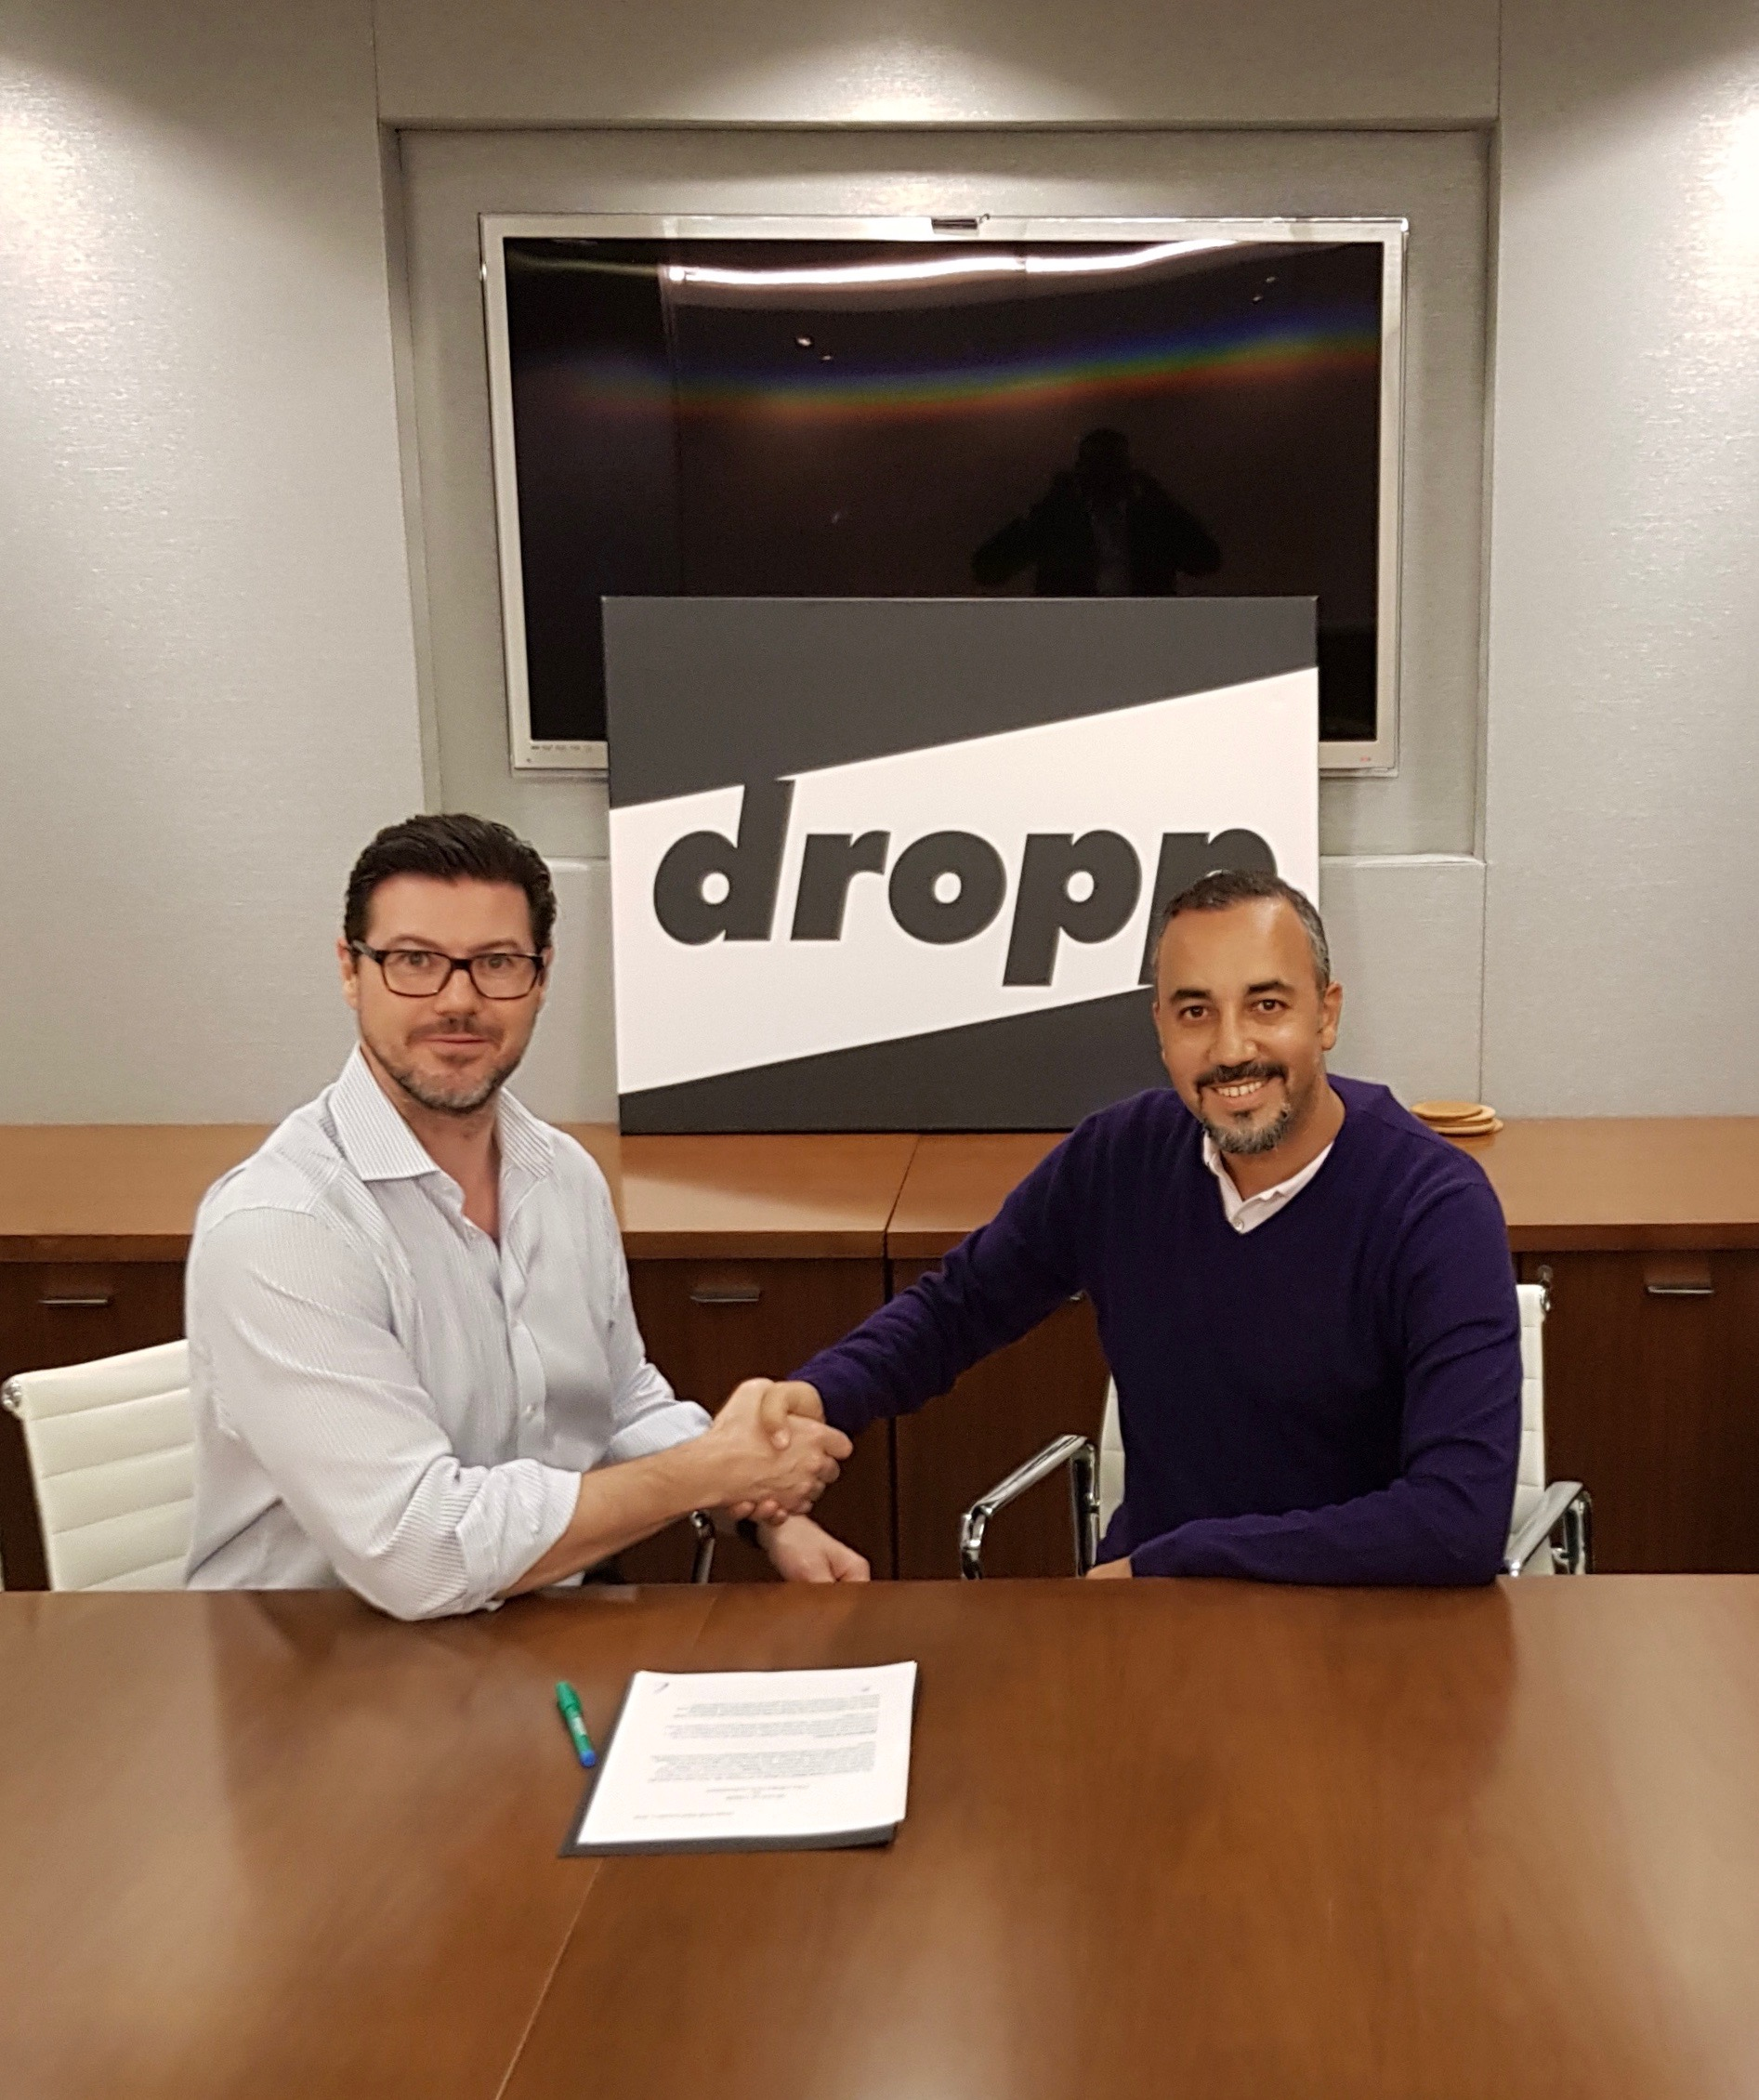 DroppTV's Ai Shoppable Media Platform Partners with StarsIn, the Premium Digital Media Platform that connects fans and brands directly with stars and celebrities!